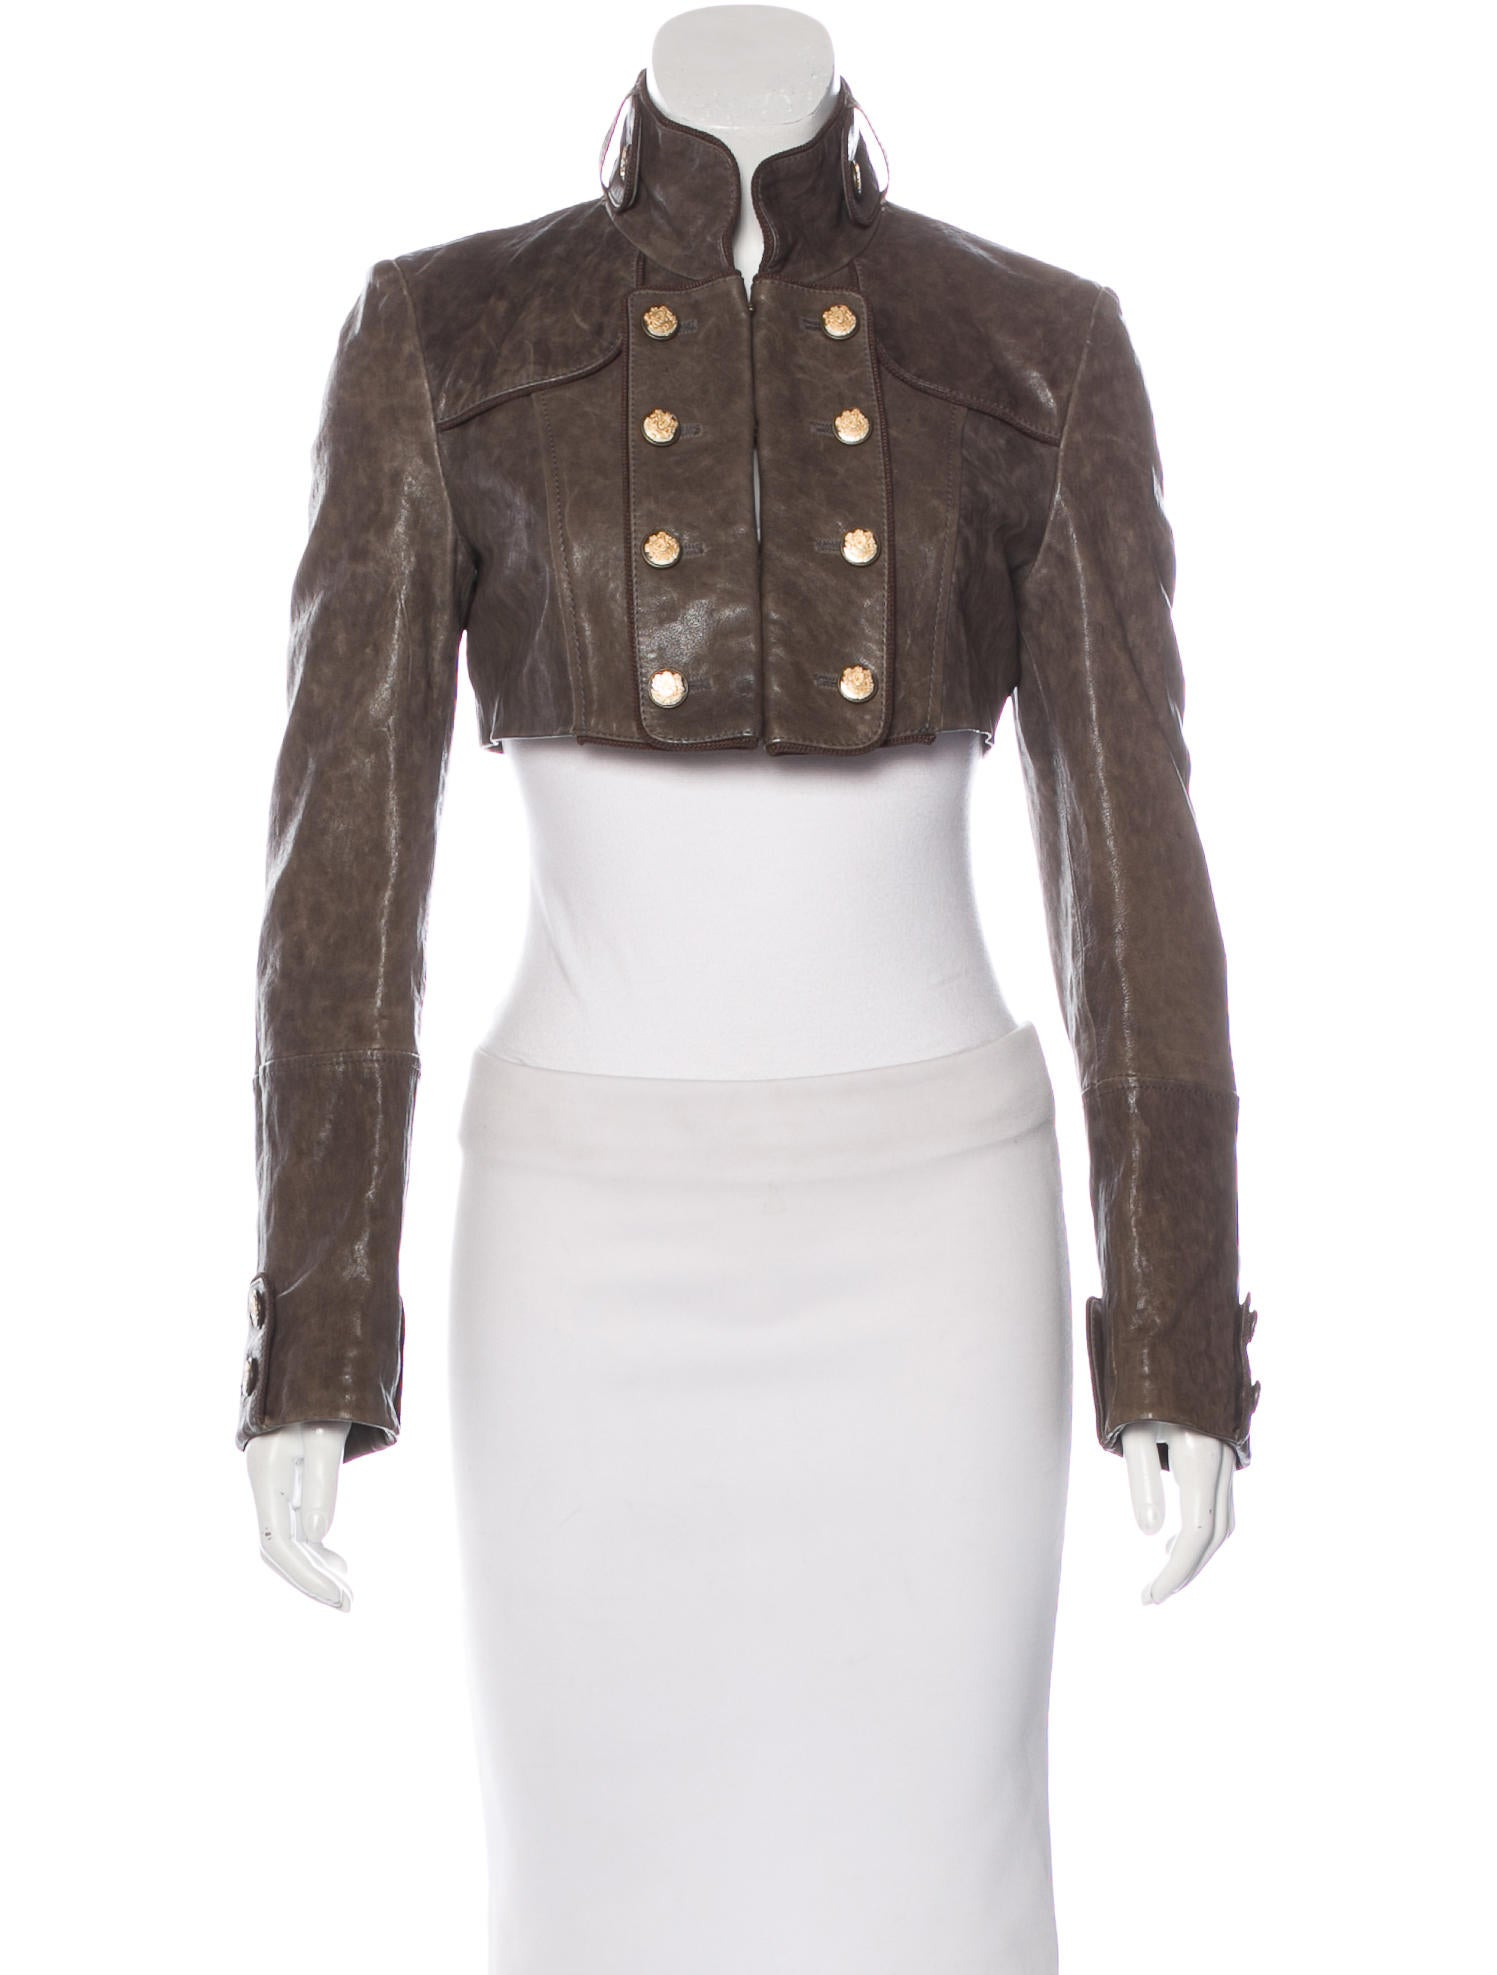 Shop Wilsons Leather for women's leather motorcycle jackets and more. Get high quality women's leather motorcycle jackets at exceptional values.